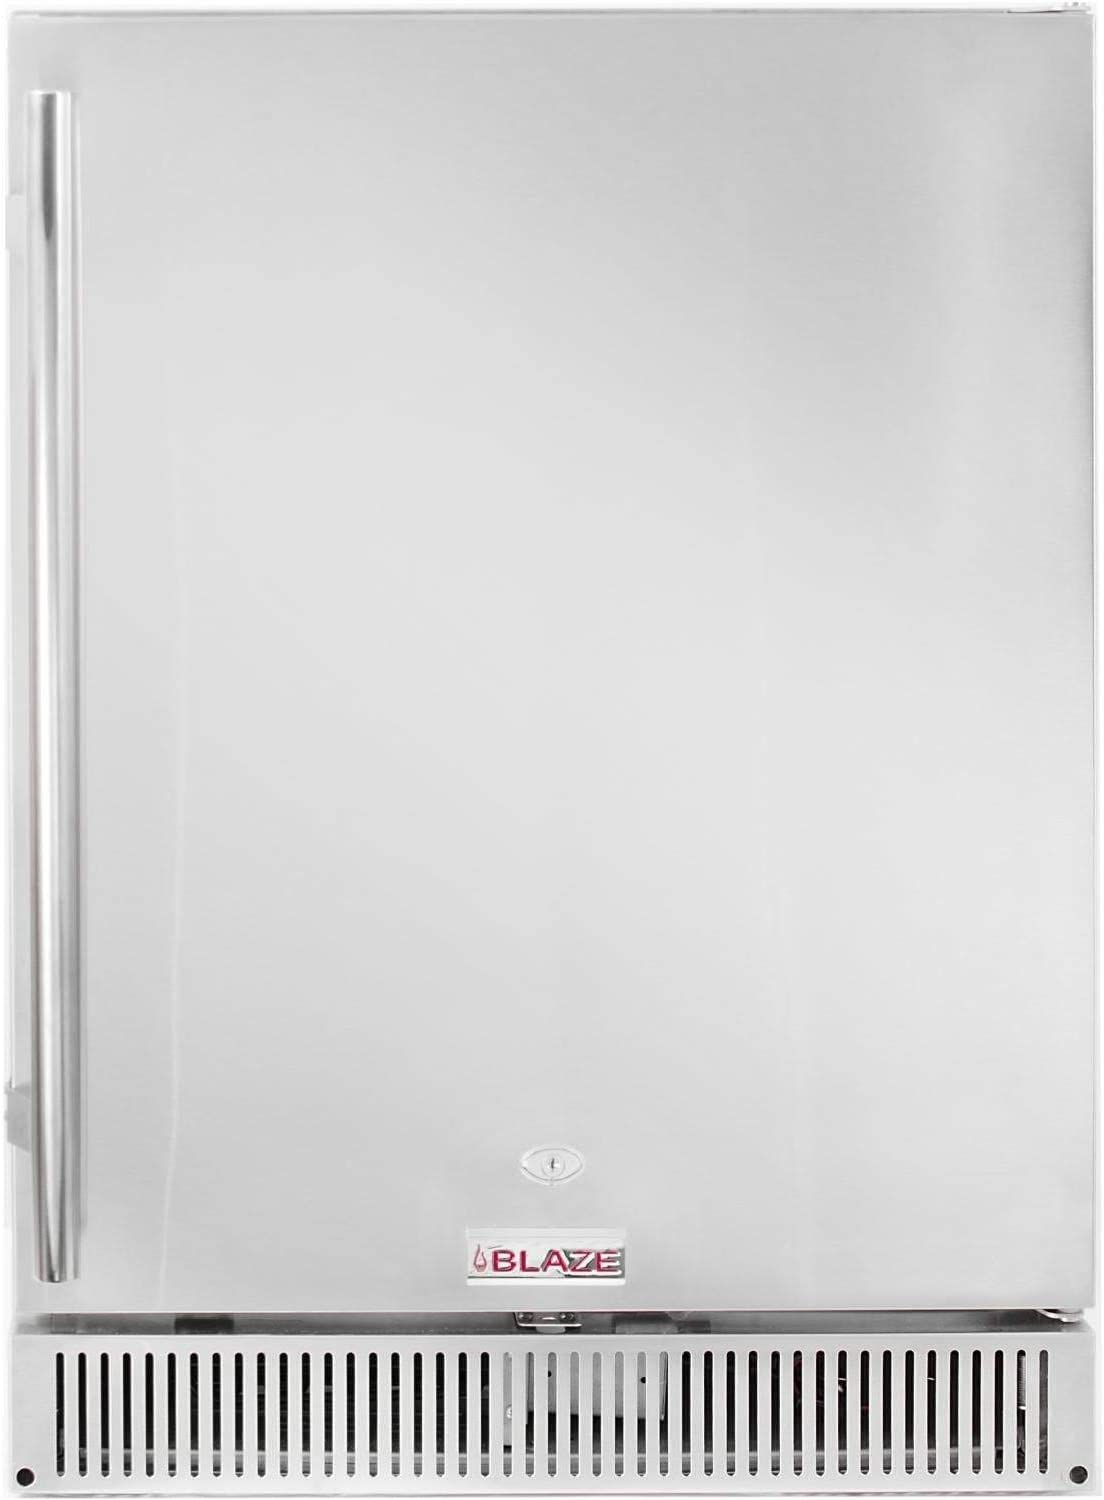 Blaze 24-inch Outdoor Rated Stainless Steel Refrigerator (BLZ-SSRF-50DH), 5.2 Cu Ft.